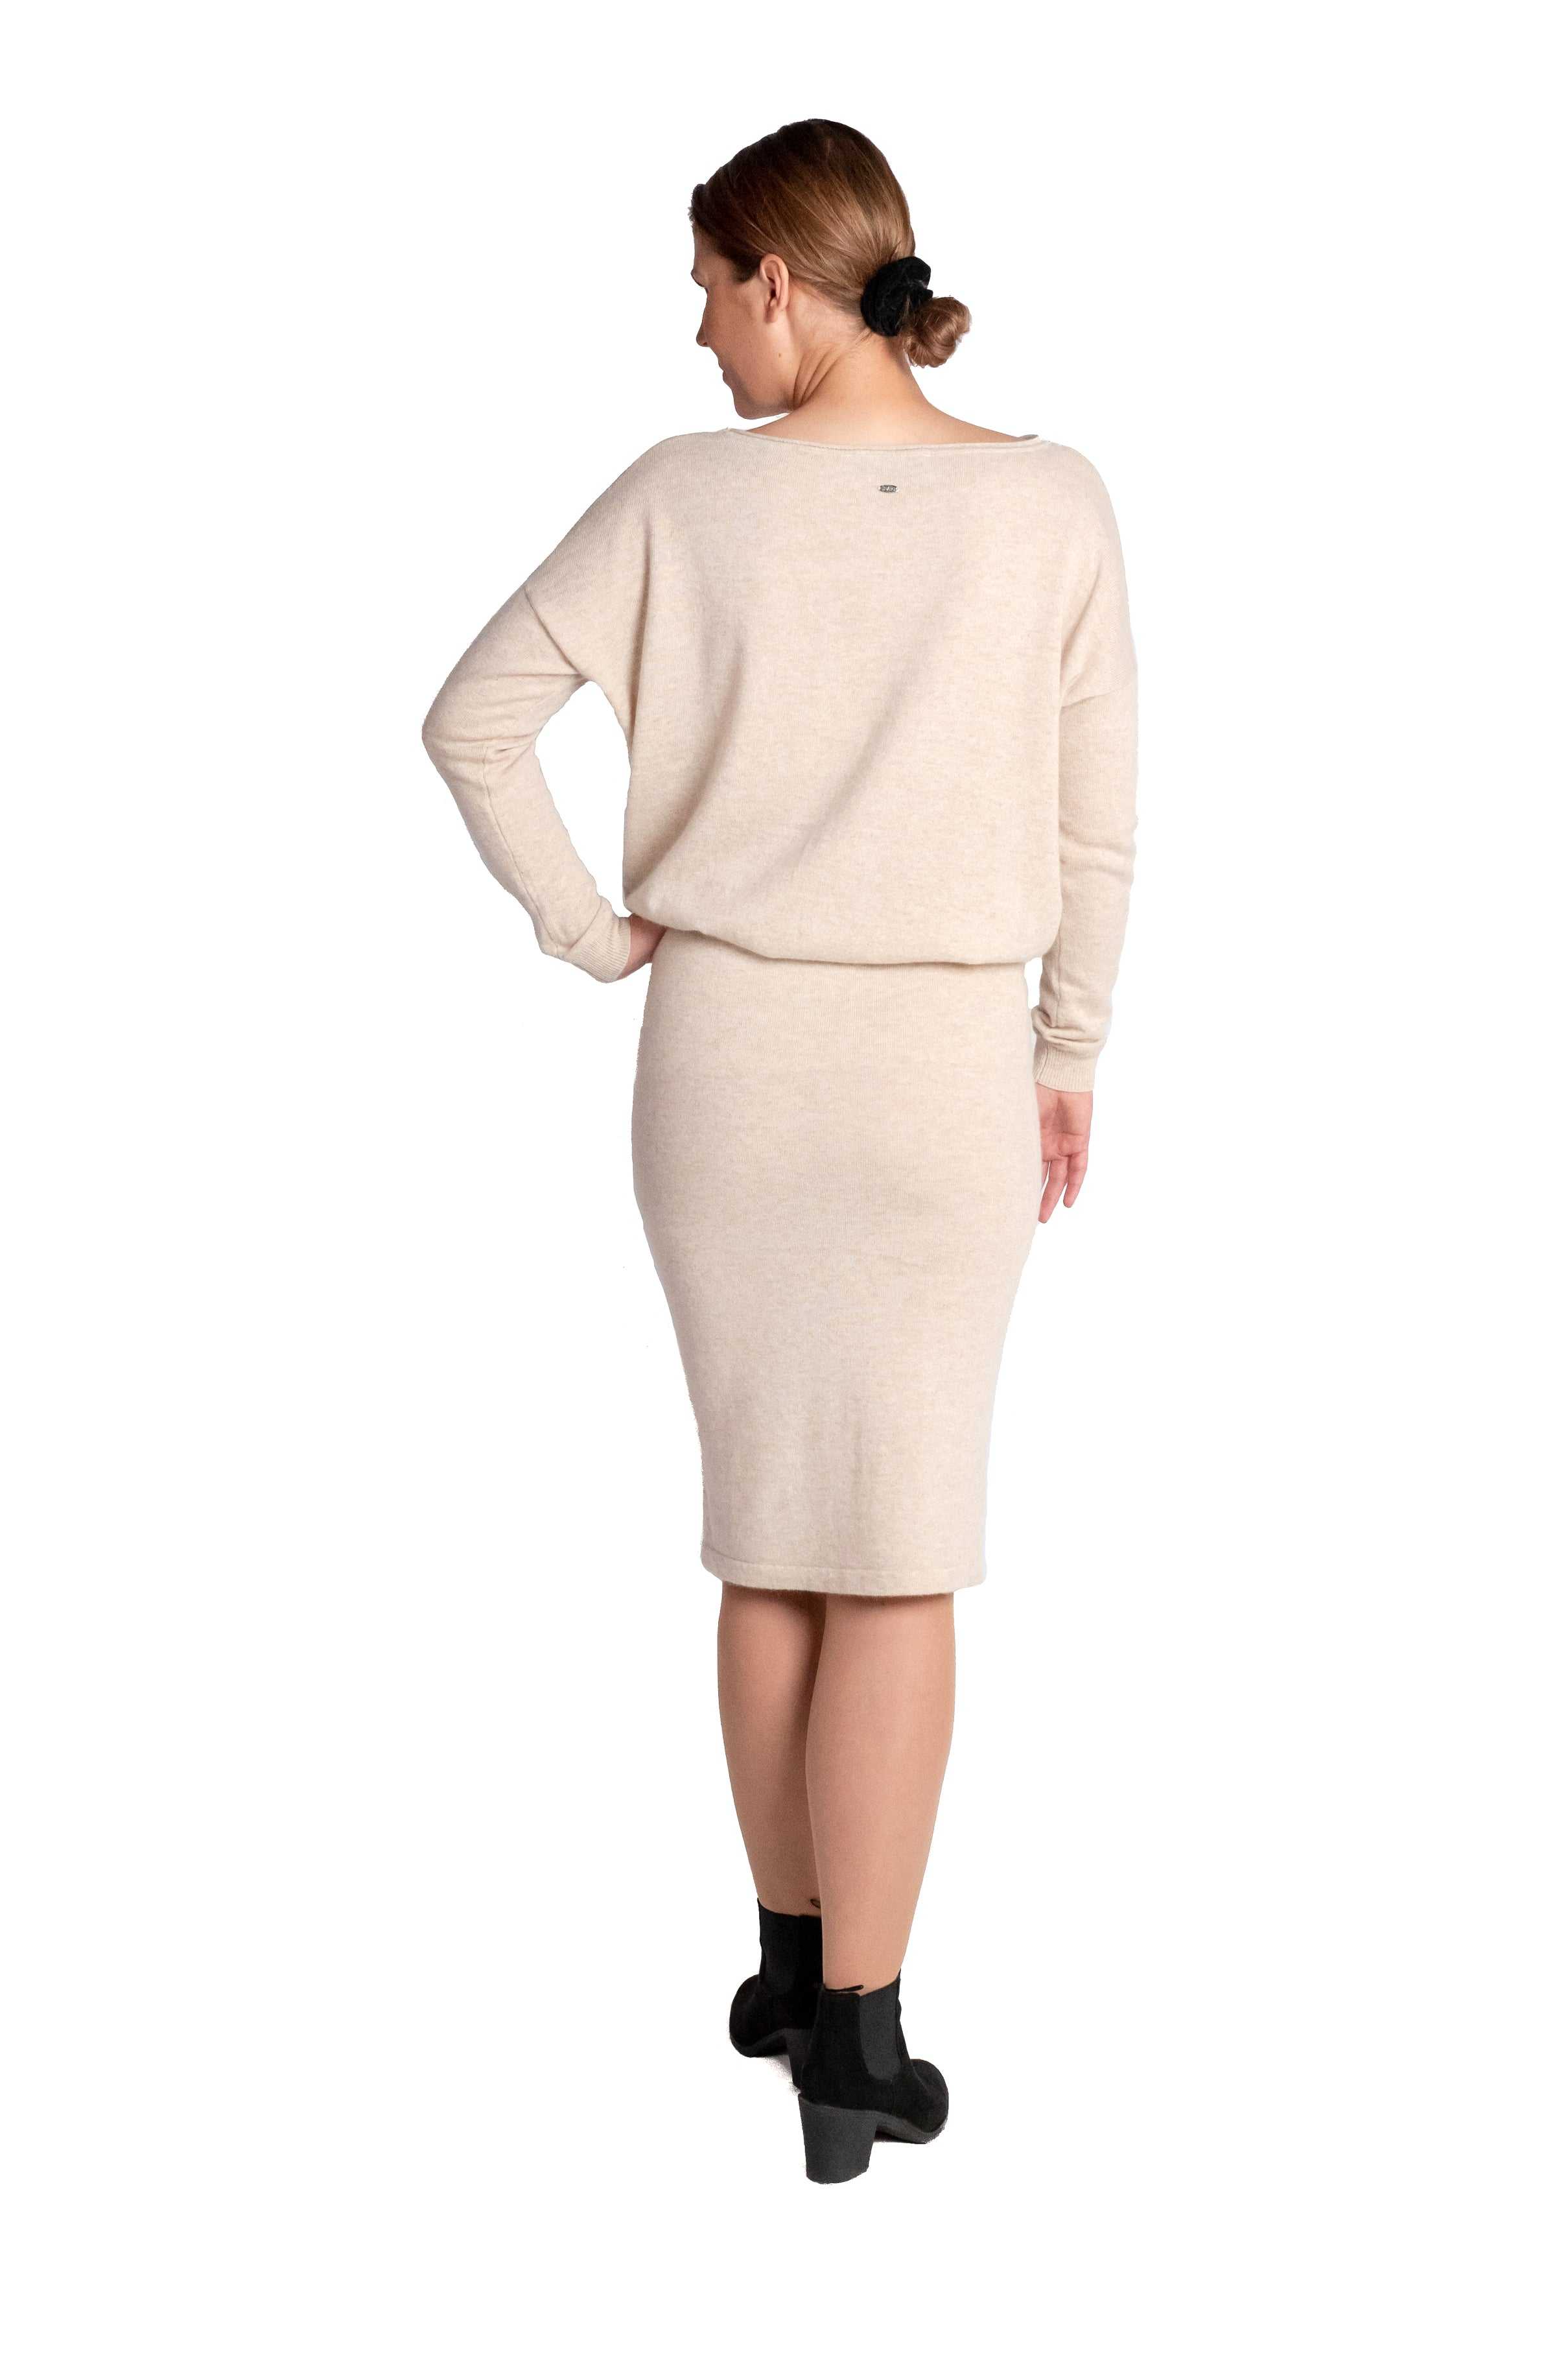 Inari Women's beige cashmere skirt - back side - 100% high-quality cashmere - Inari-clothing.fi